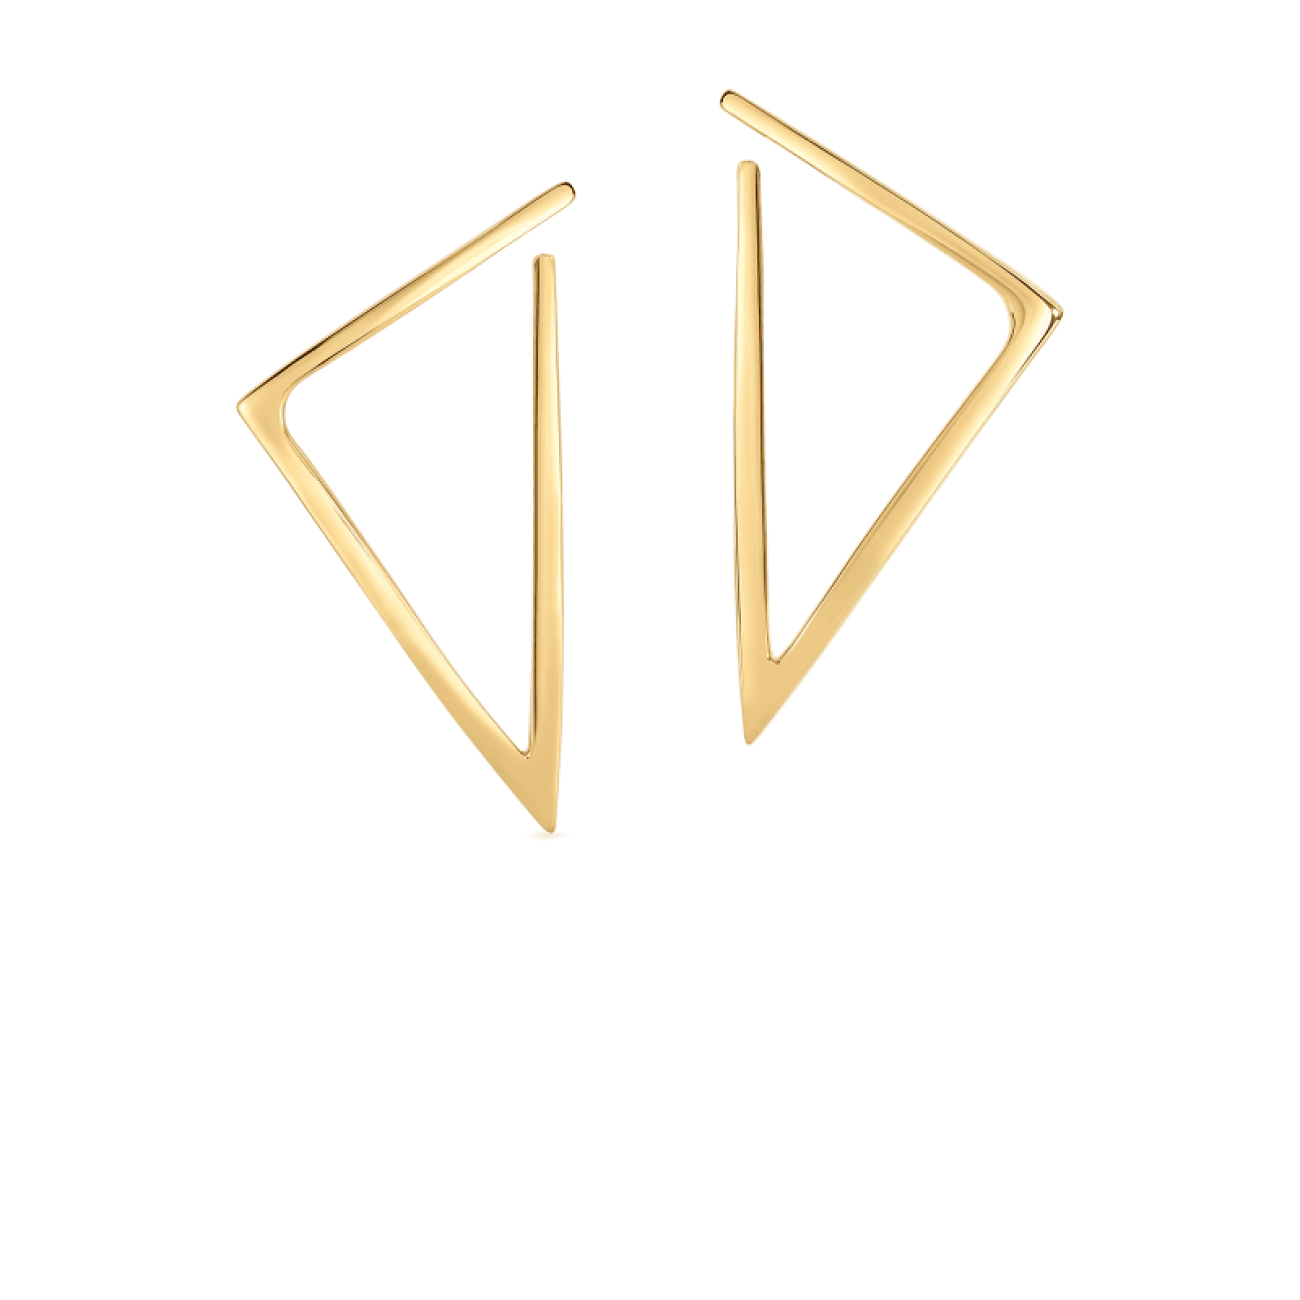 Roberto Coin Jewelry - 18KT GOLD TRIANGLE EARRINGS | Manfredi Jewels